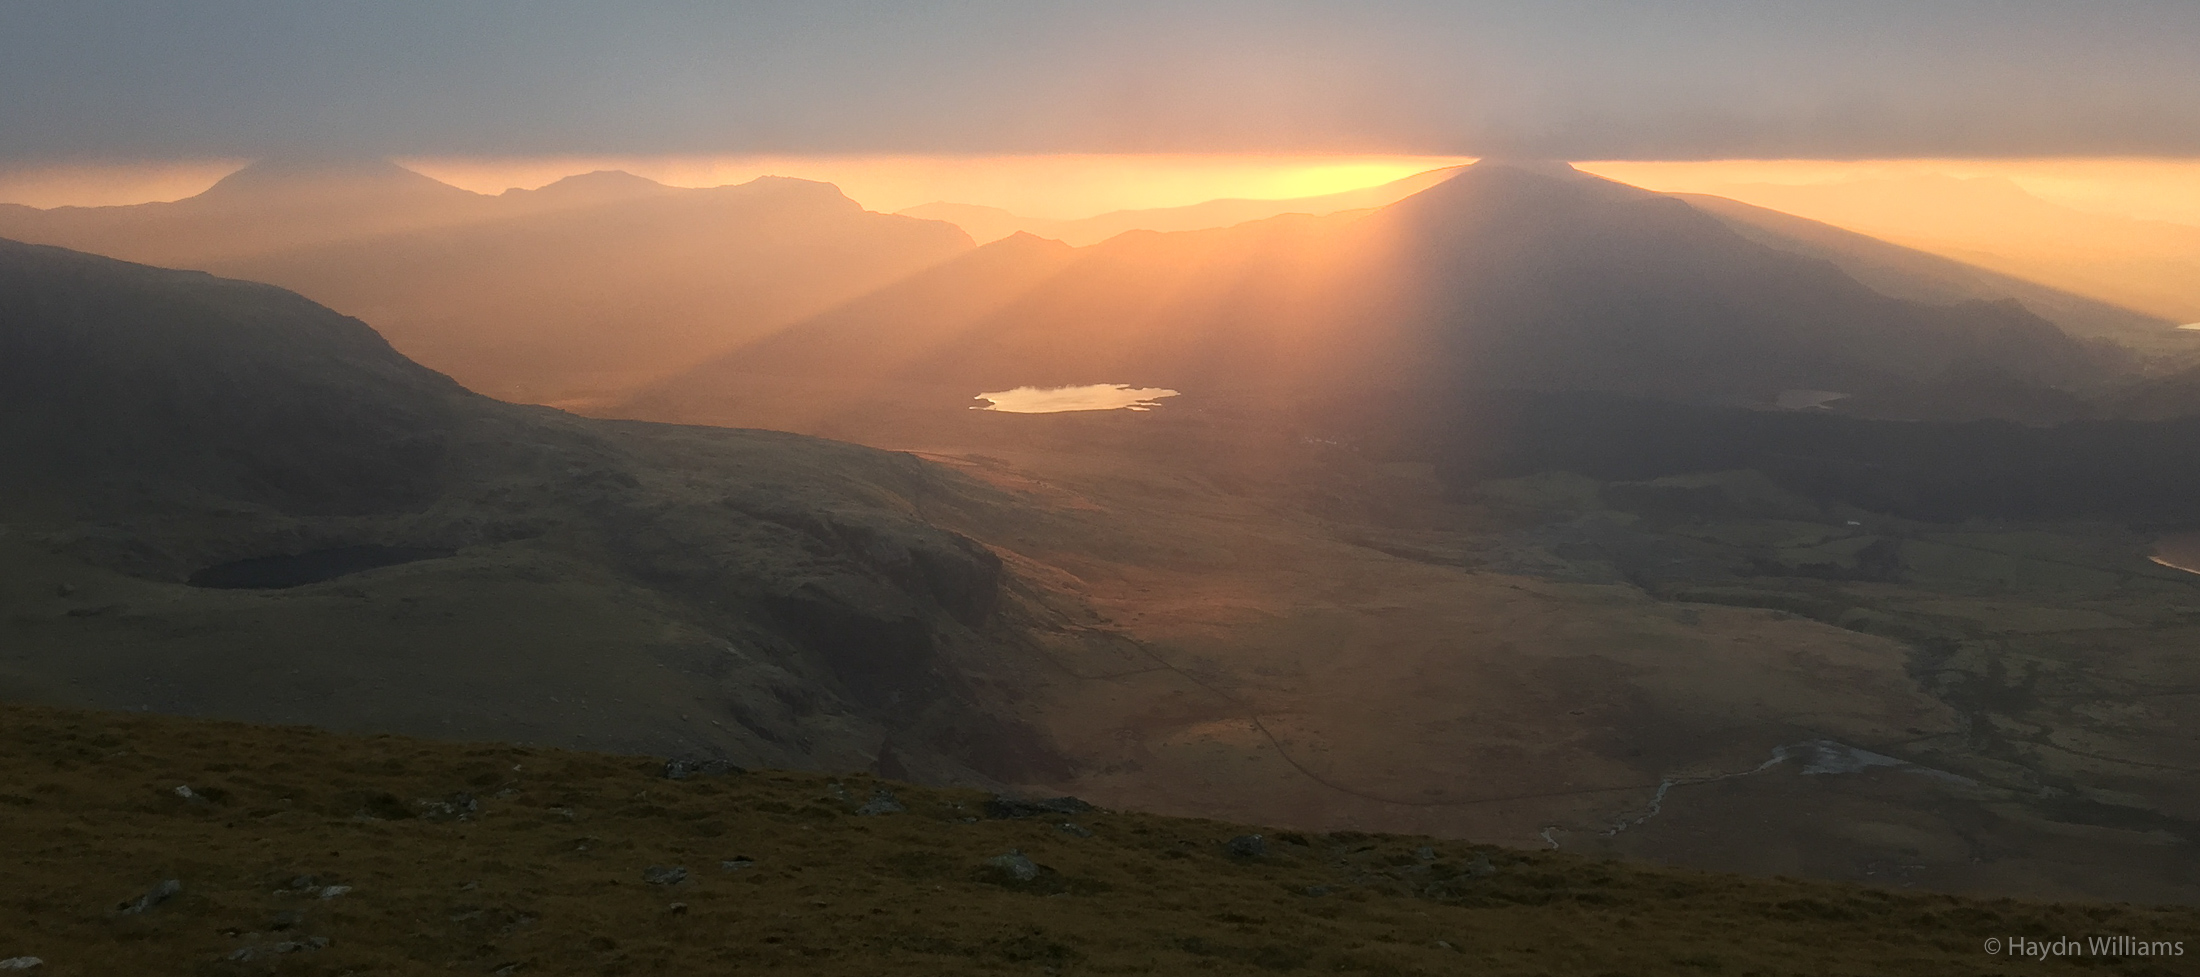 Nantlle and the Lleyn Peninsula from the Snowdon Ranger path. © Haydn Williams 2016